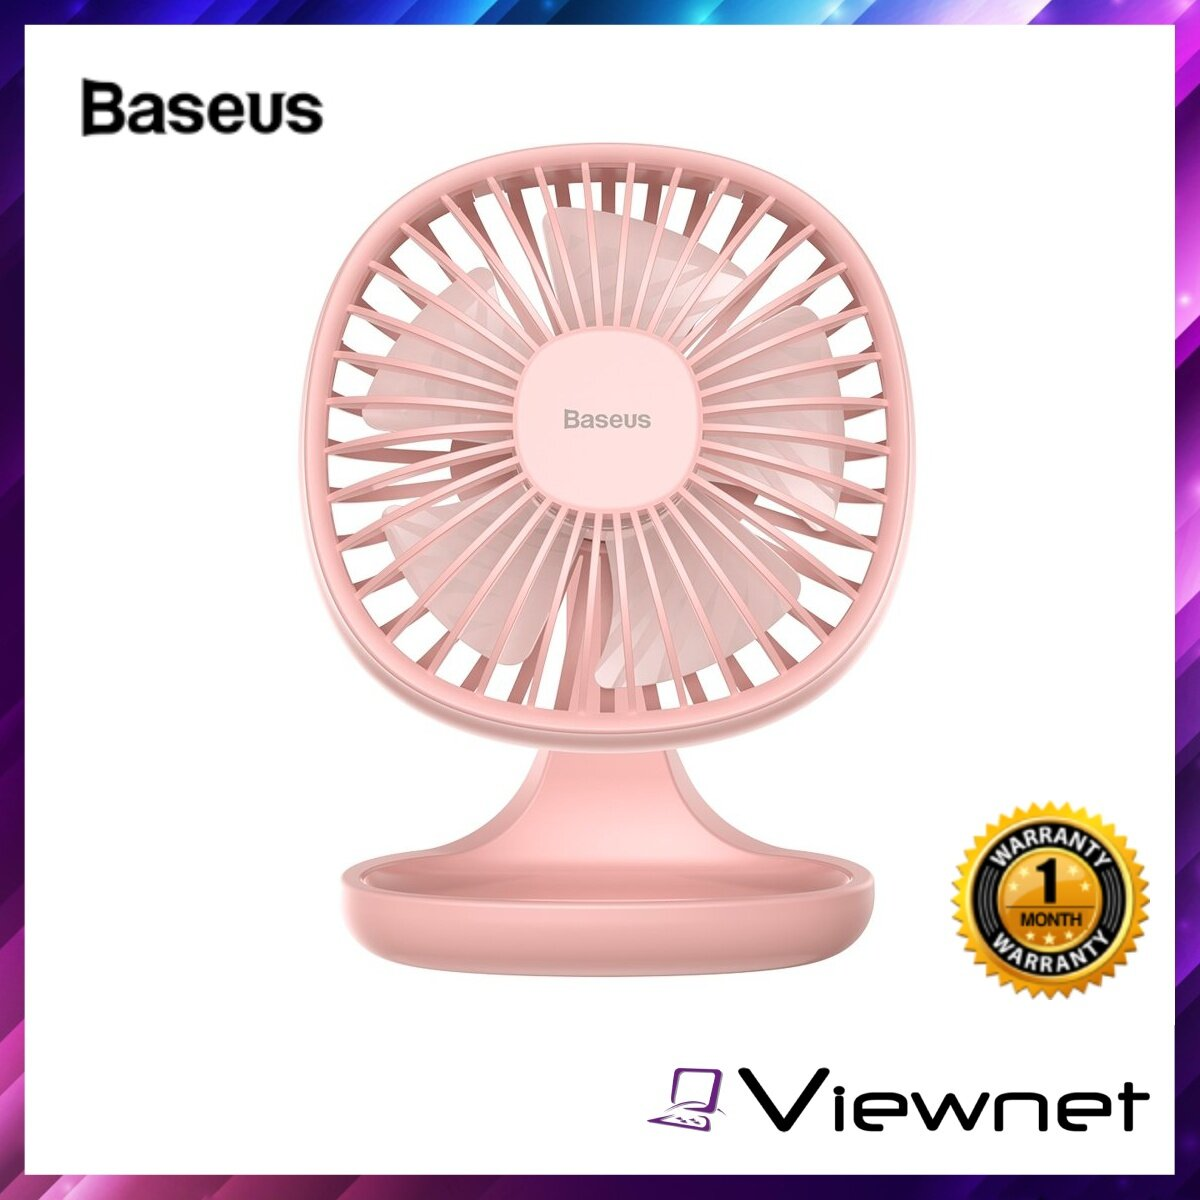 Baseus Pudding-Shaped Fan, 3 Speeds adjustable, Low Noise, 5V 1A, Micro USB Port, White / Pink / Blue